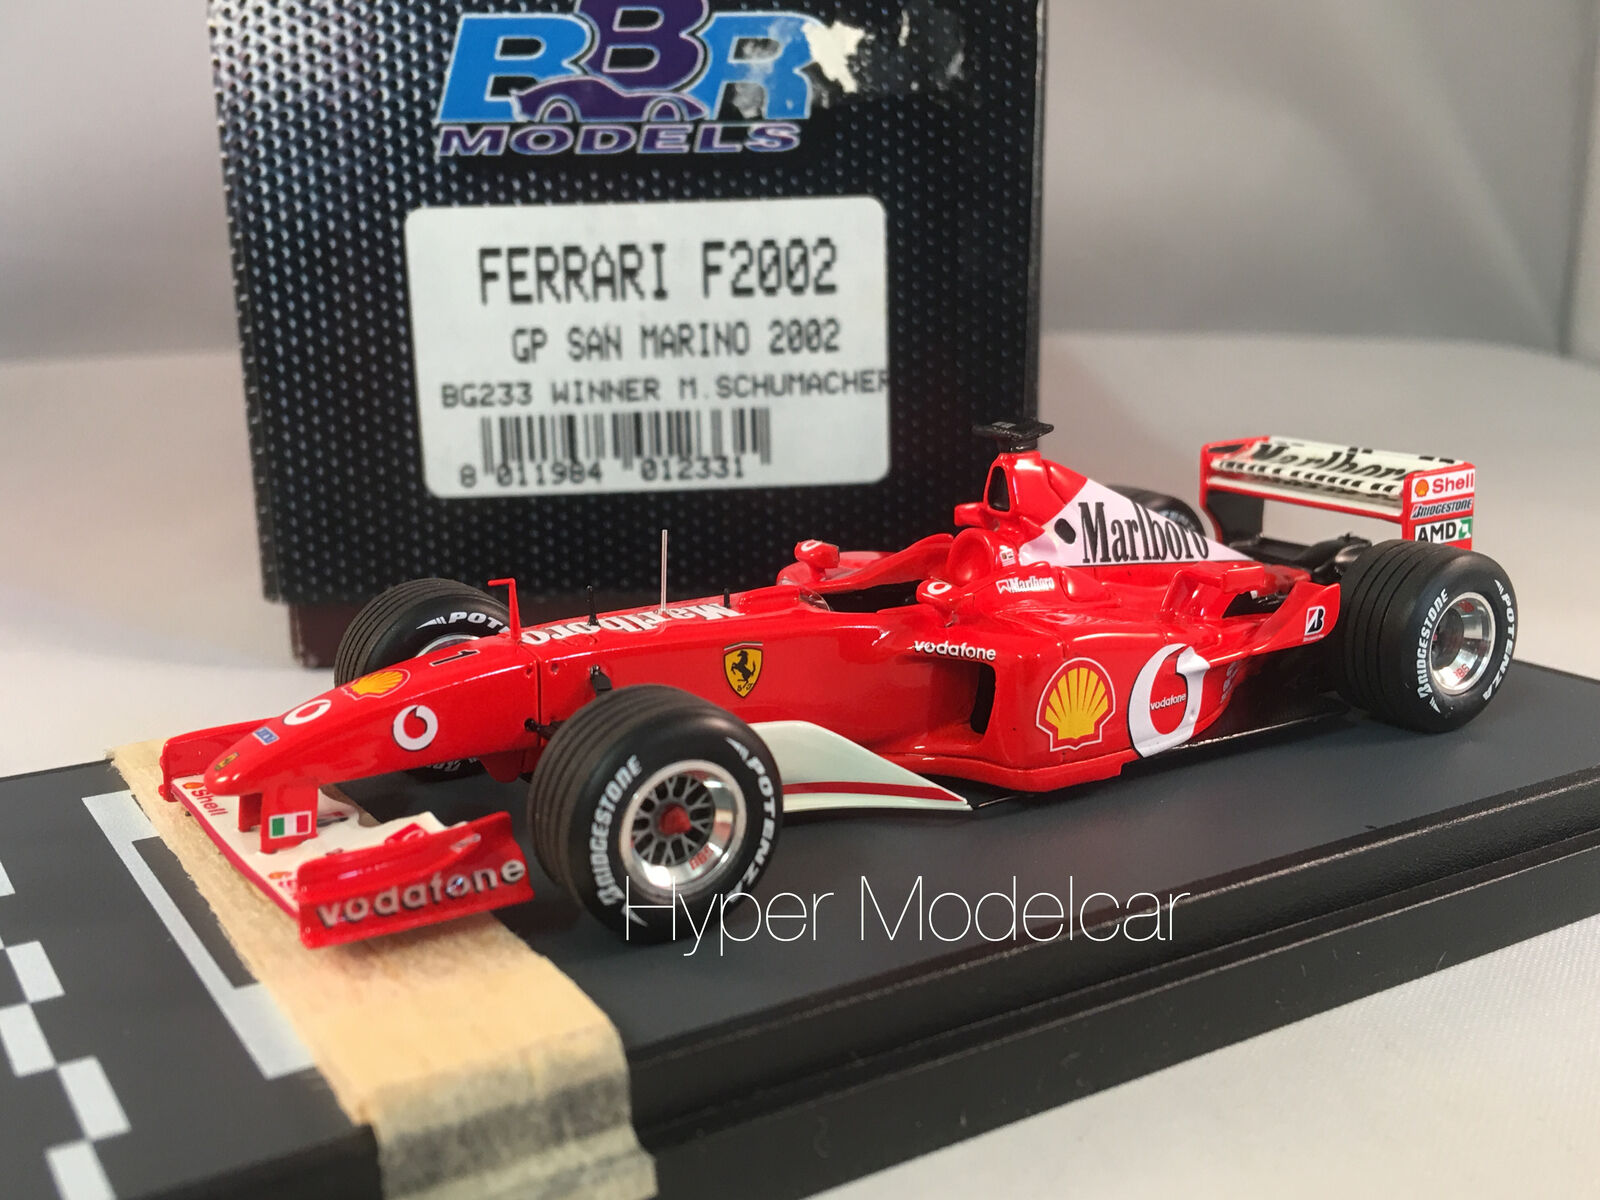 BBR Models 1 43 f1 Ferrari f2002 GP SAN MARINO 2002 WINNER M. SCHUMACHER Article